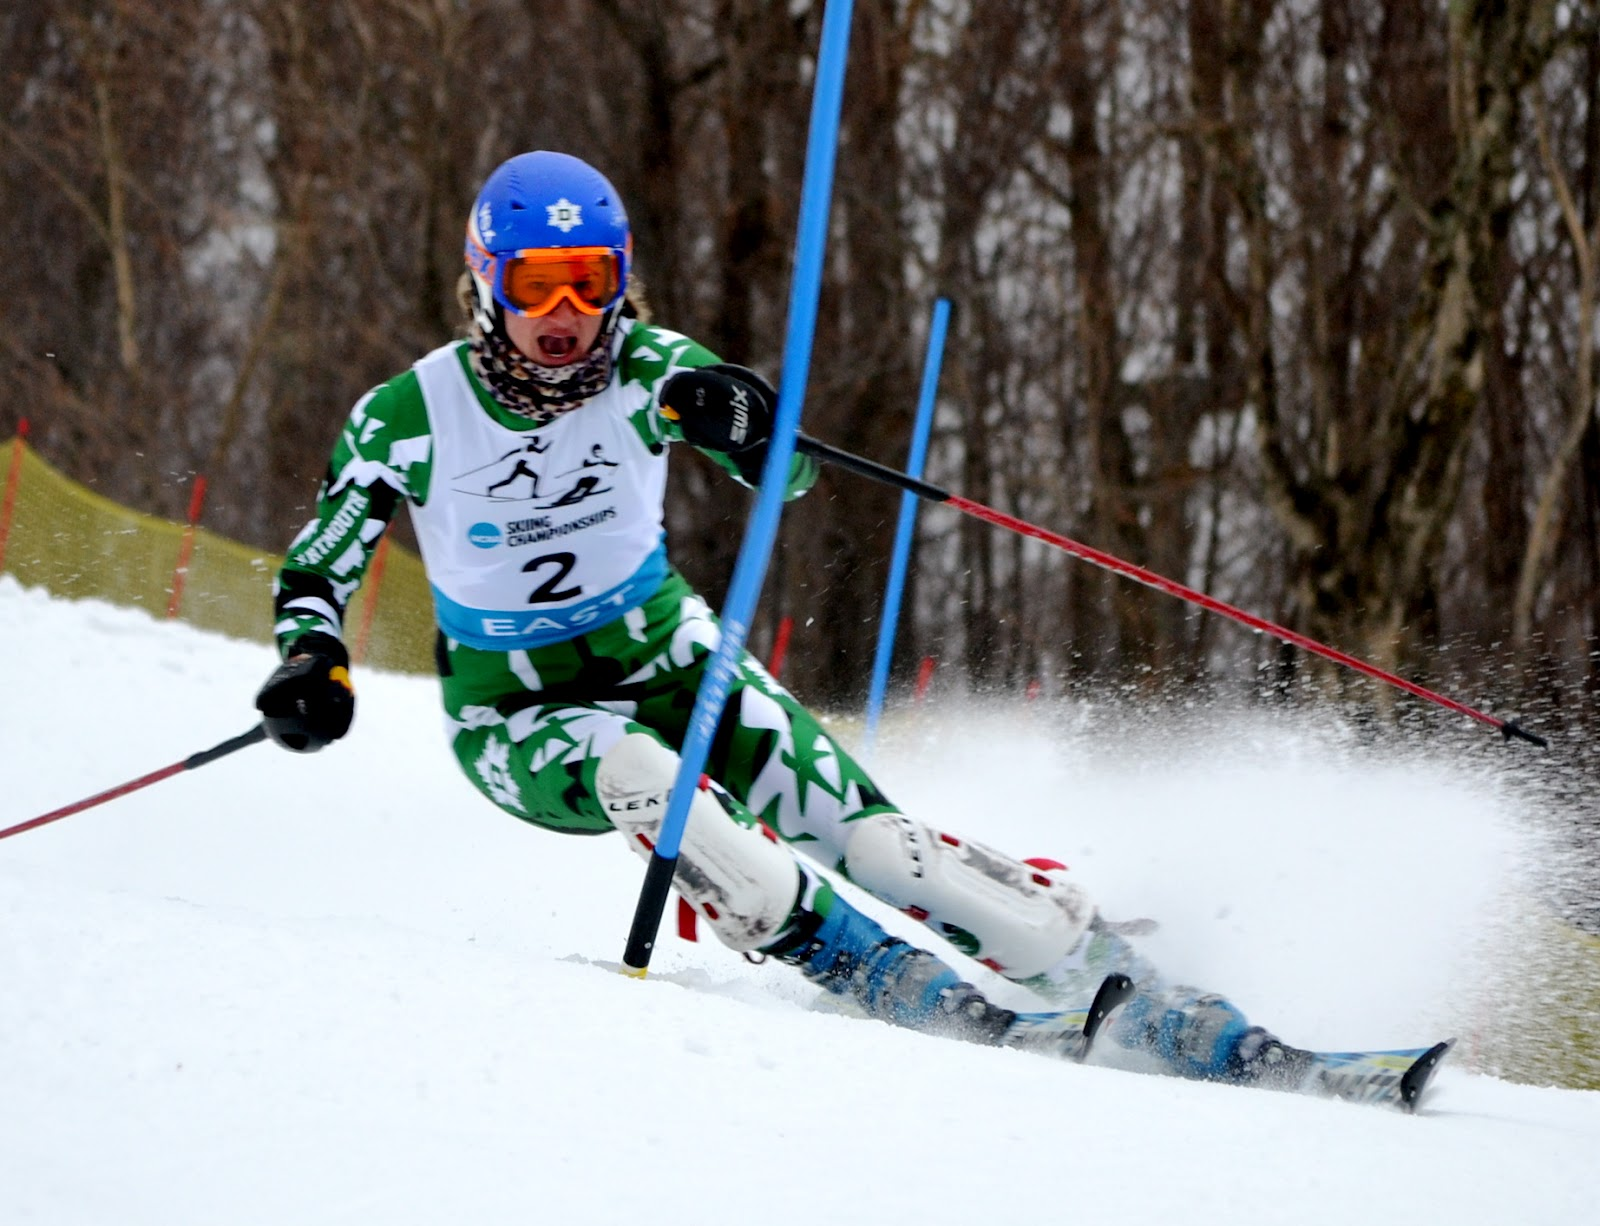 Alpine ski resorts plagued by lack of snow - Dartmouth S Annie Rendall Slaying Into Second